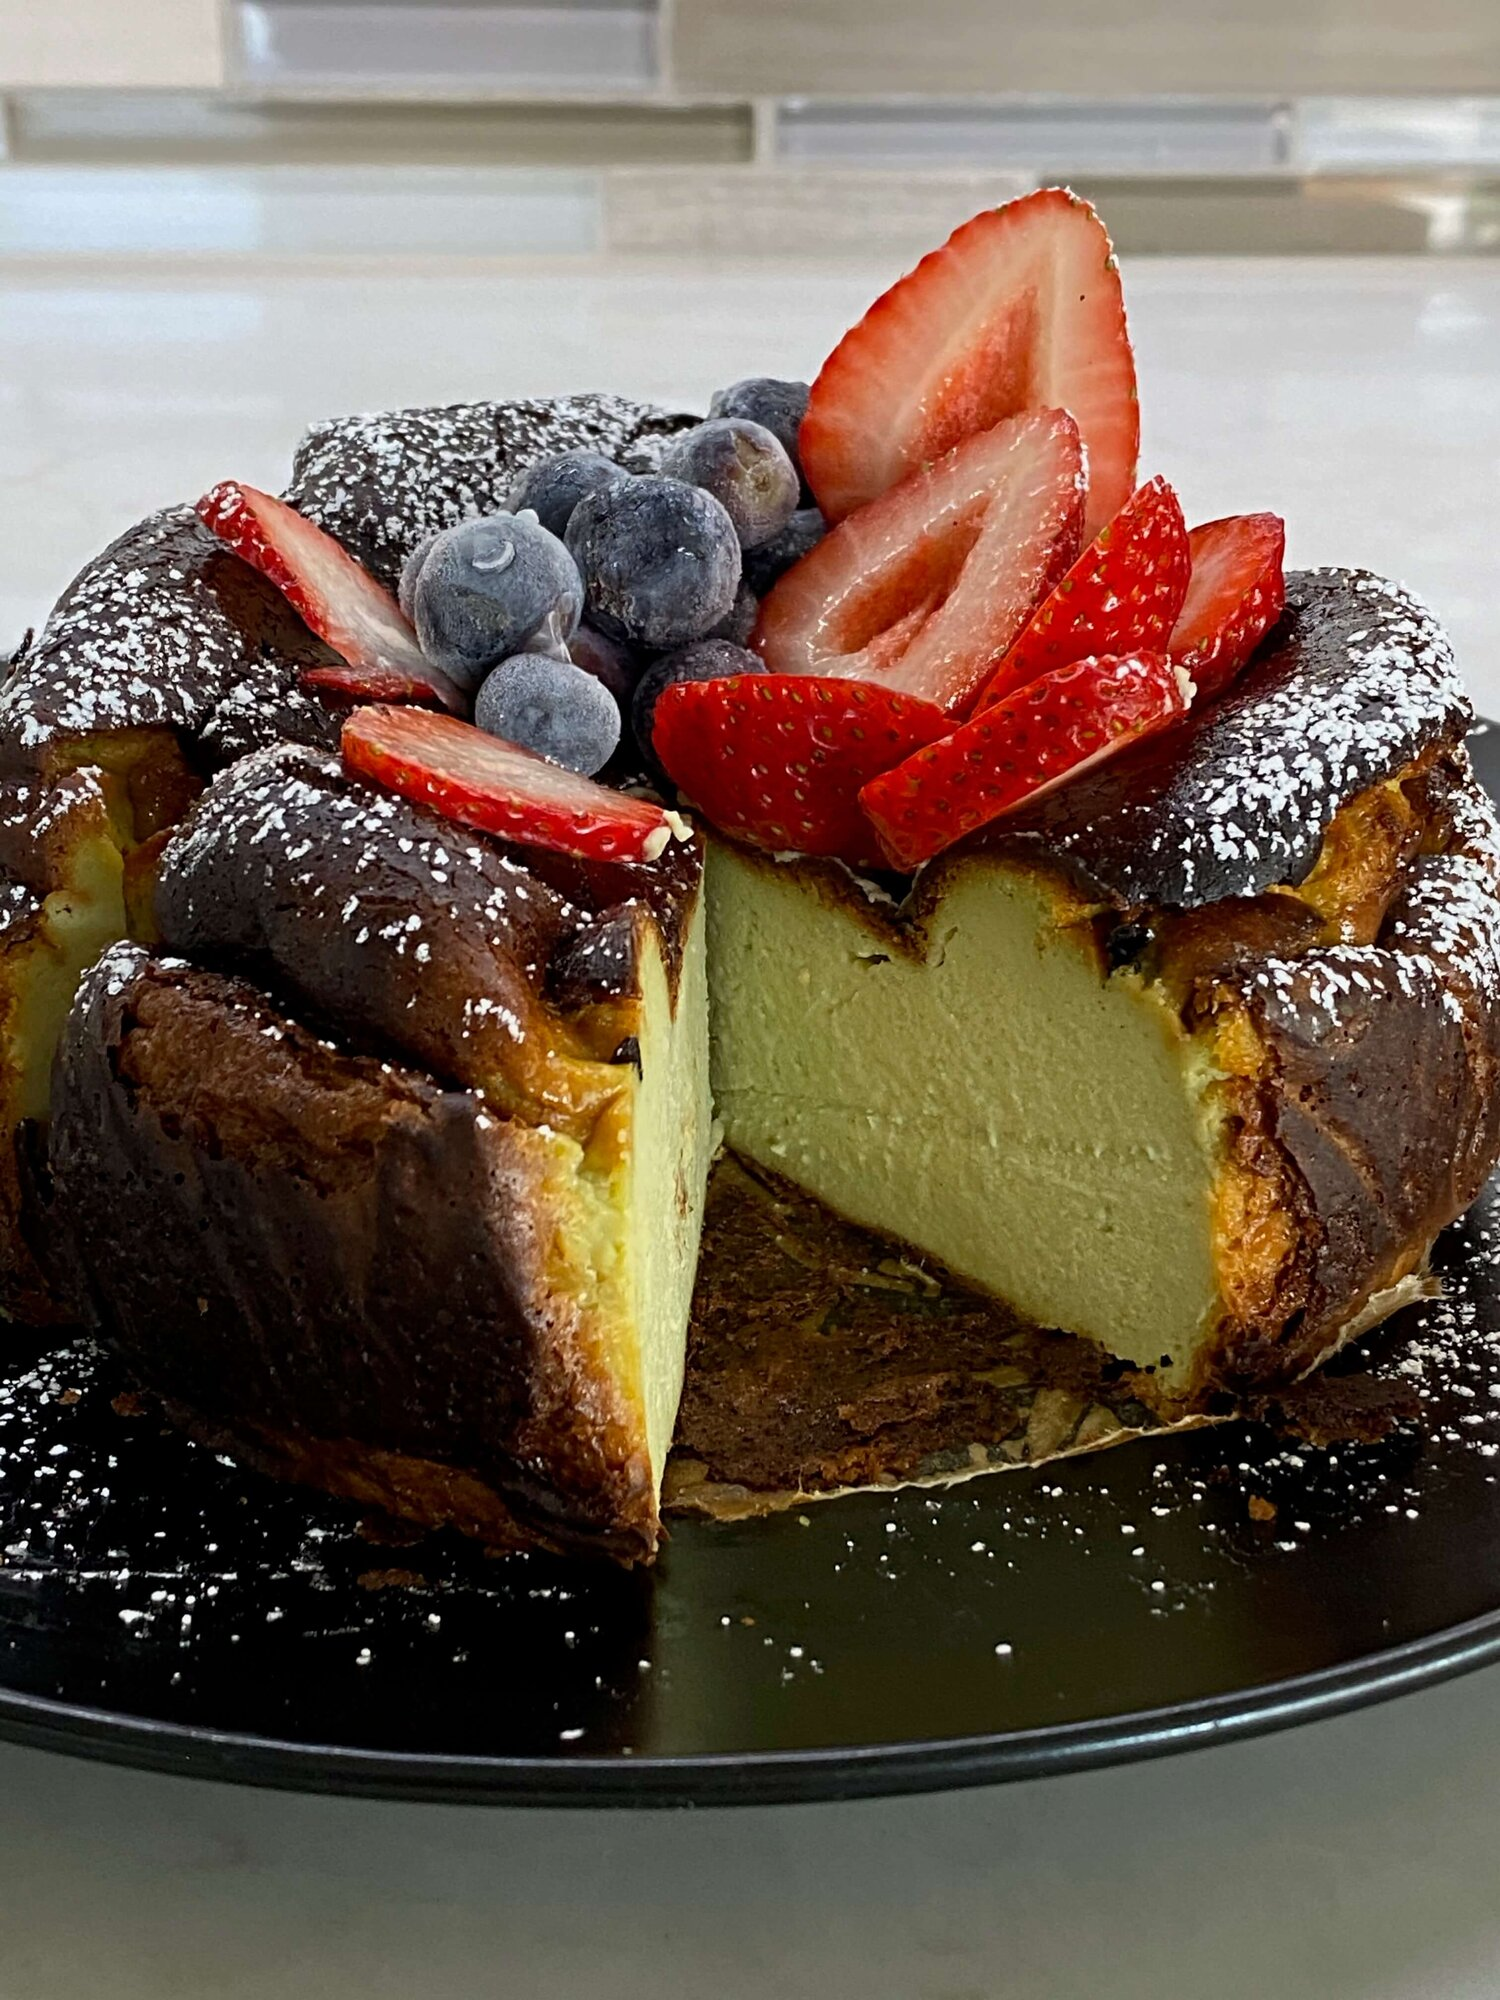 Matcha Basque Cheesecake Recipe Make A Matcha Green Tea Basque Burnt Cheesecake With Me It Ll Be Creamy Tall And Delicious Phil And Mama